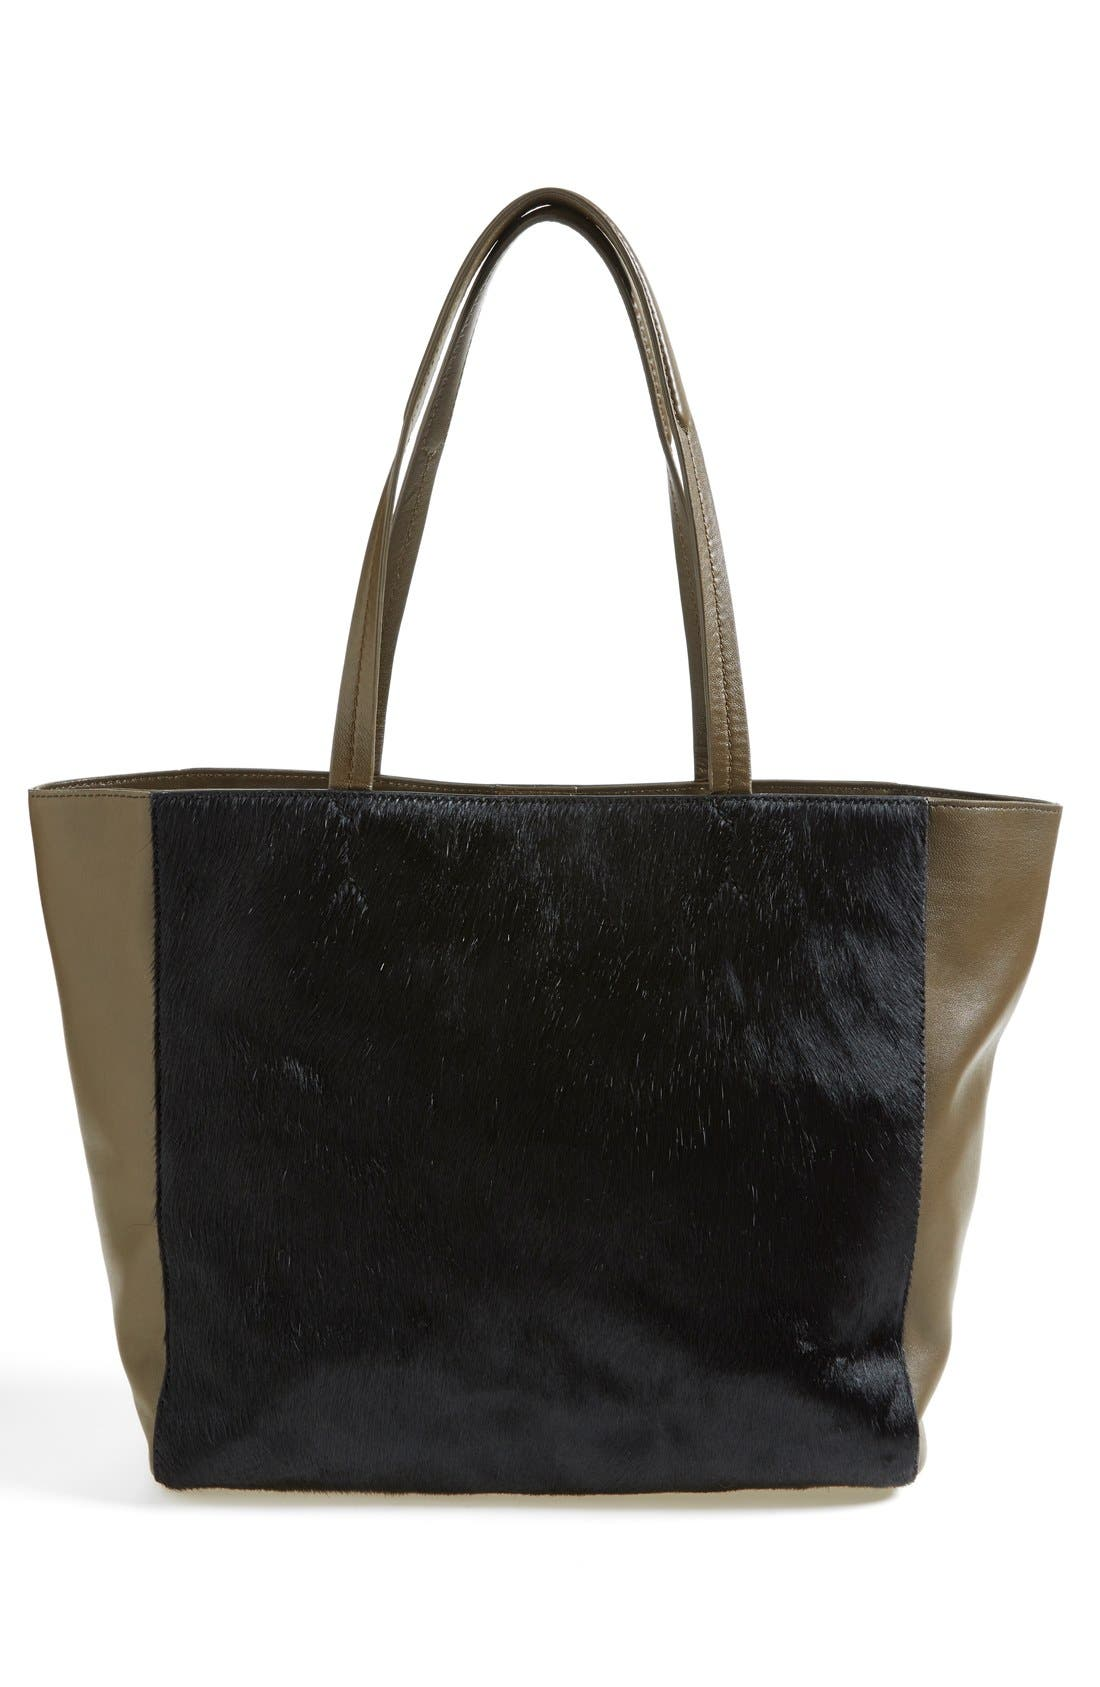 'James' Genuine Calf Hair & Leather Tote,                             Alternate thumbnail 4, color,                             001